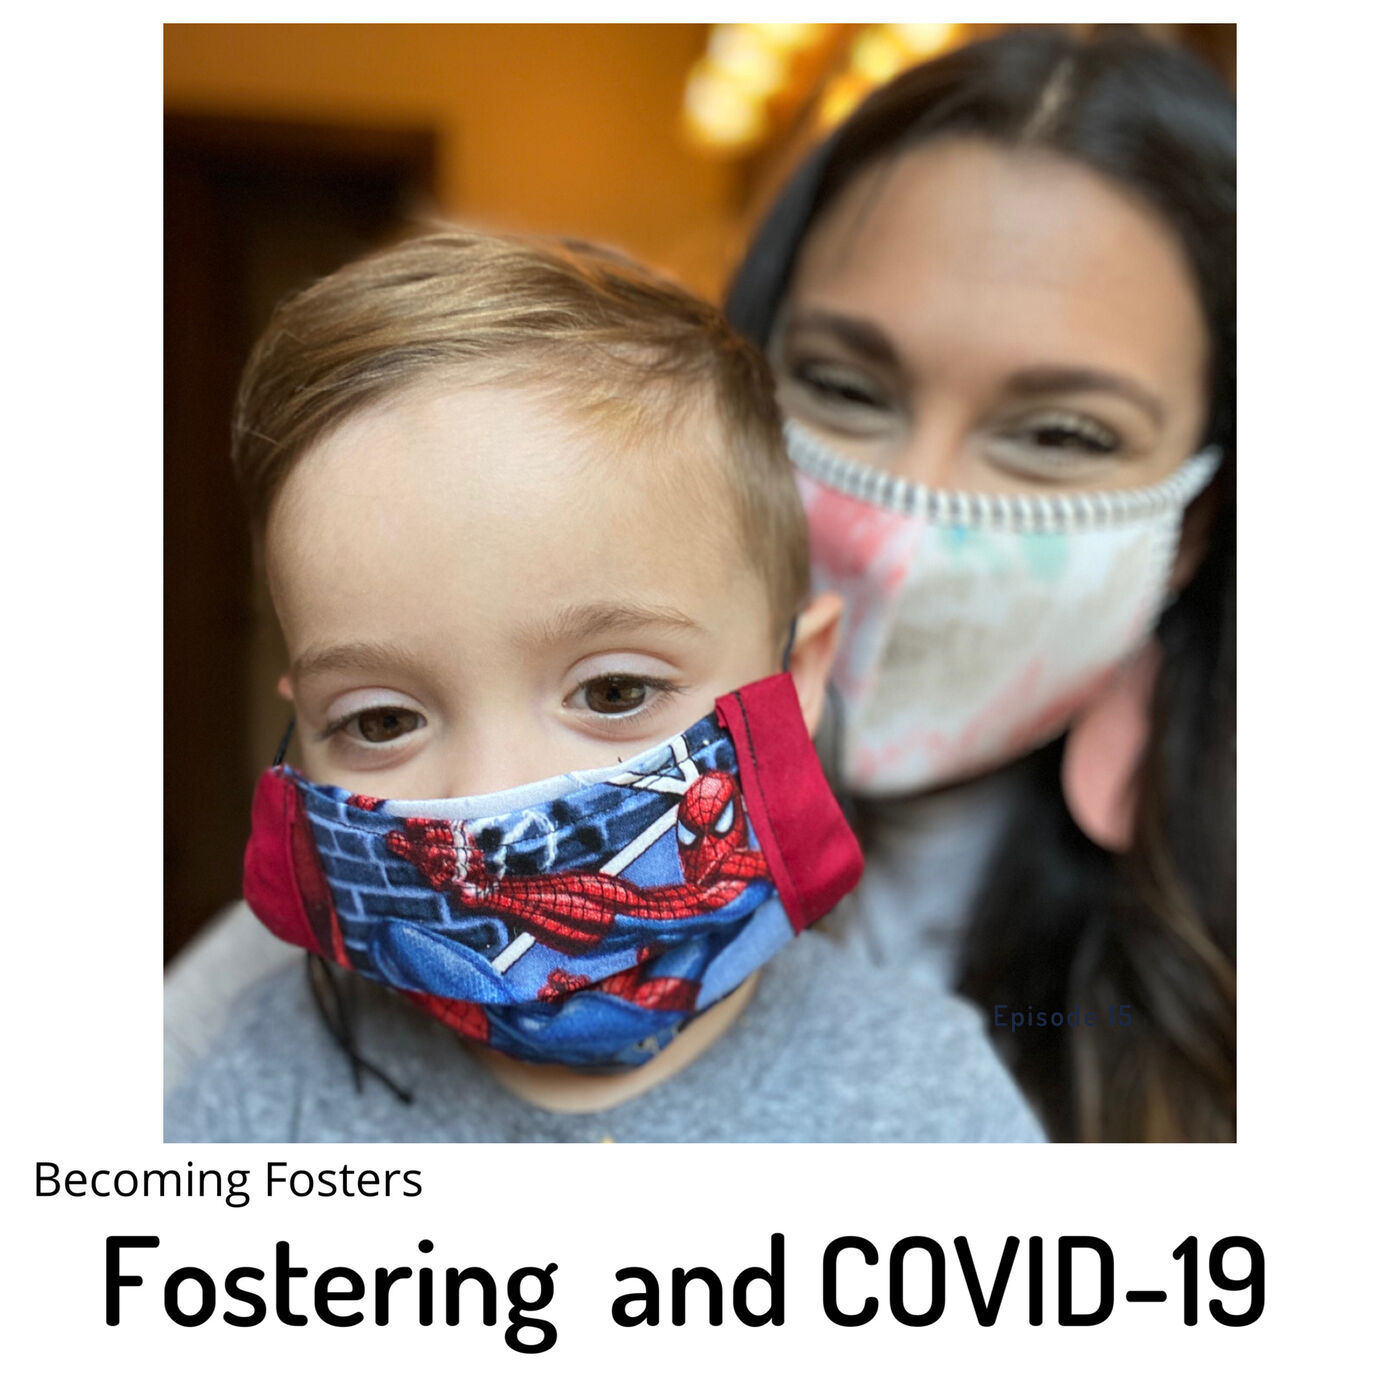 Fostering and COVID-19